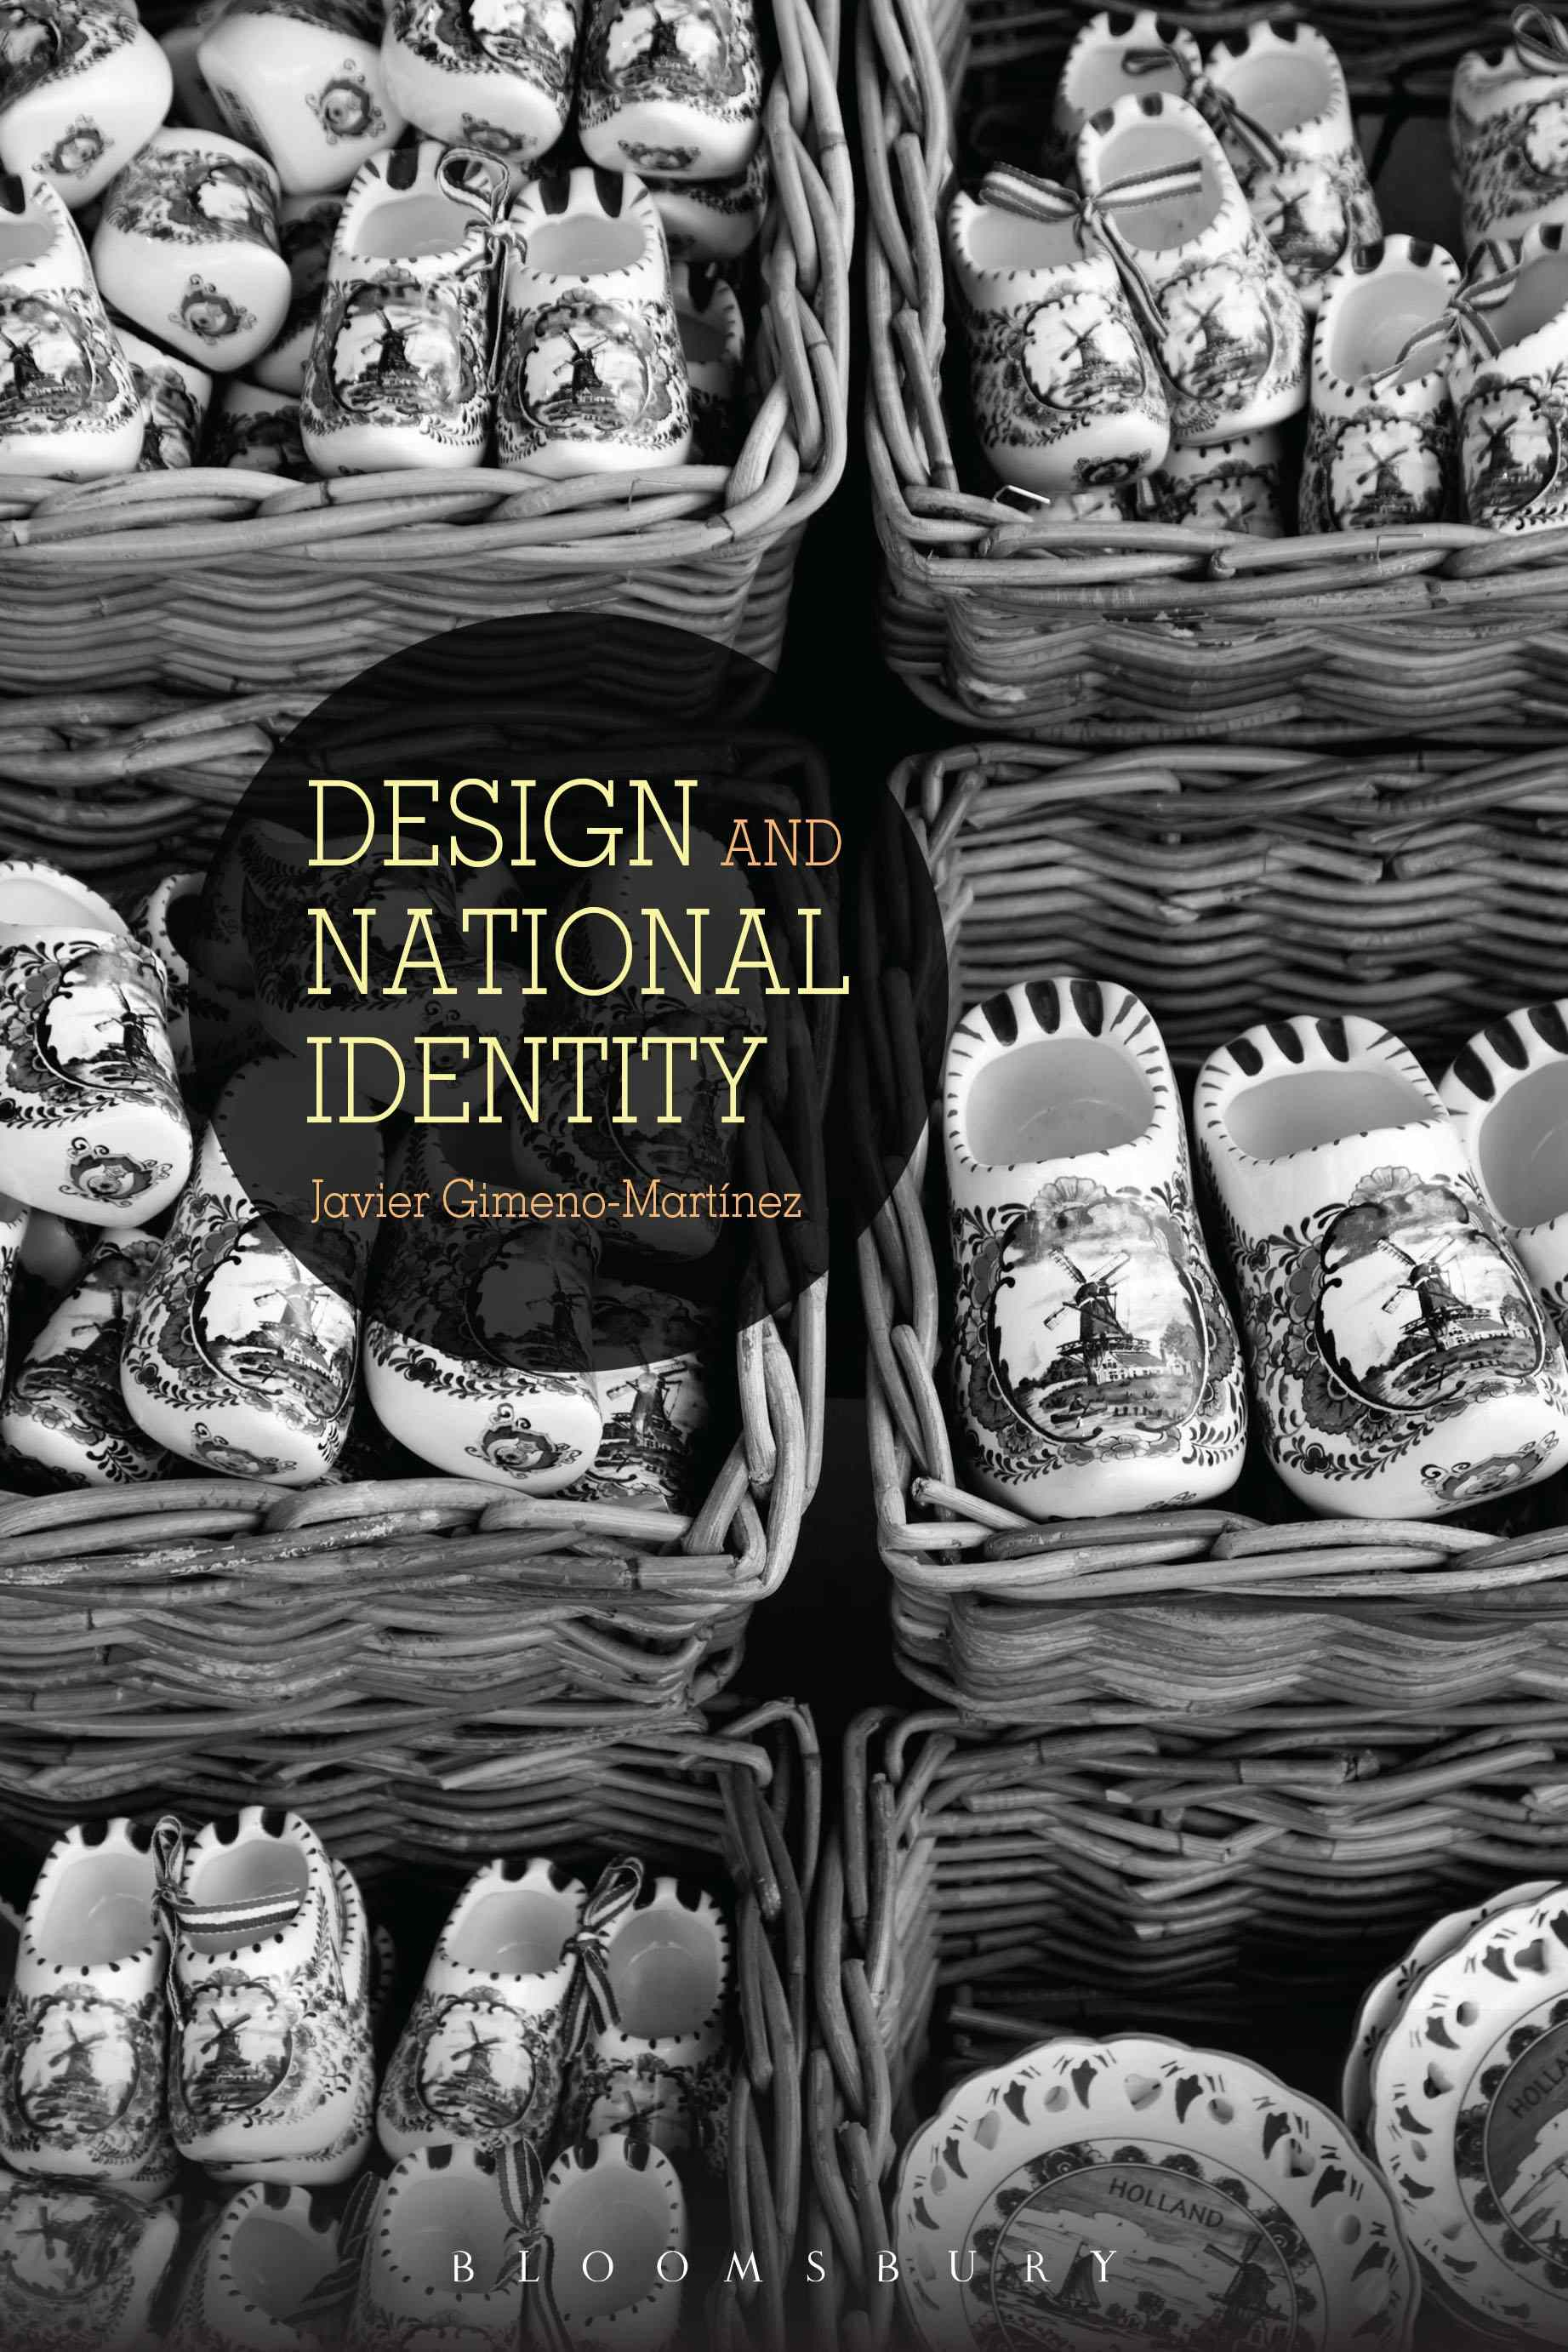 Design and National Identity